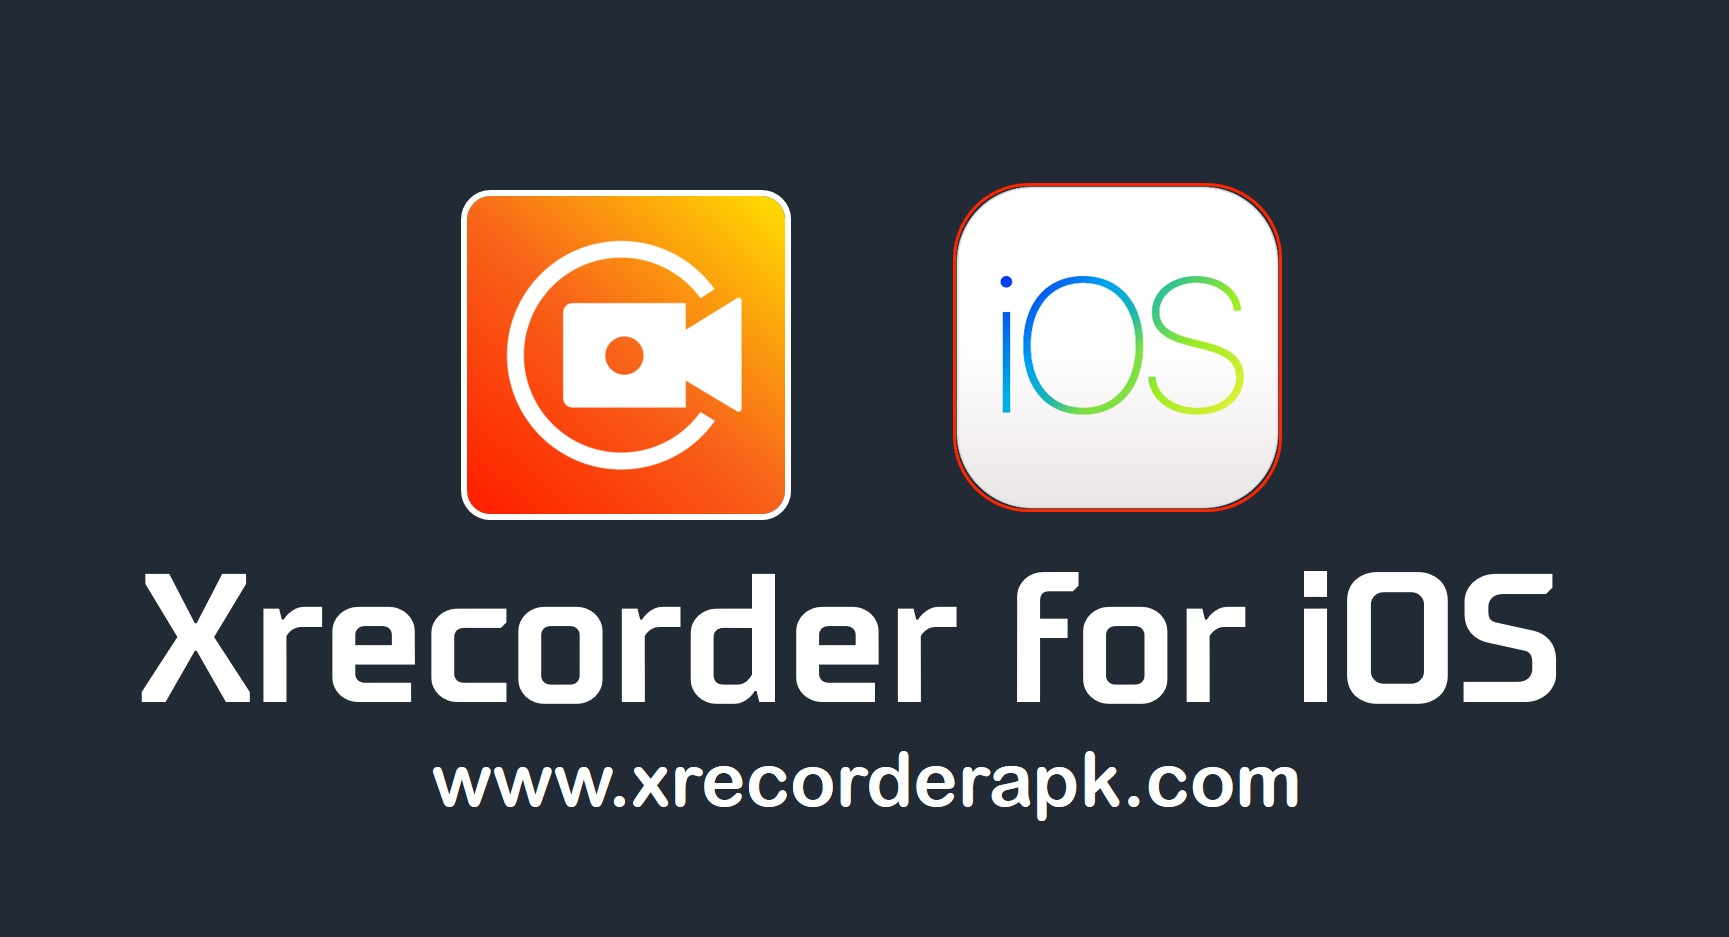 xrecorder for ios